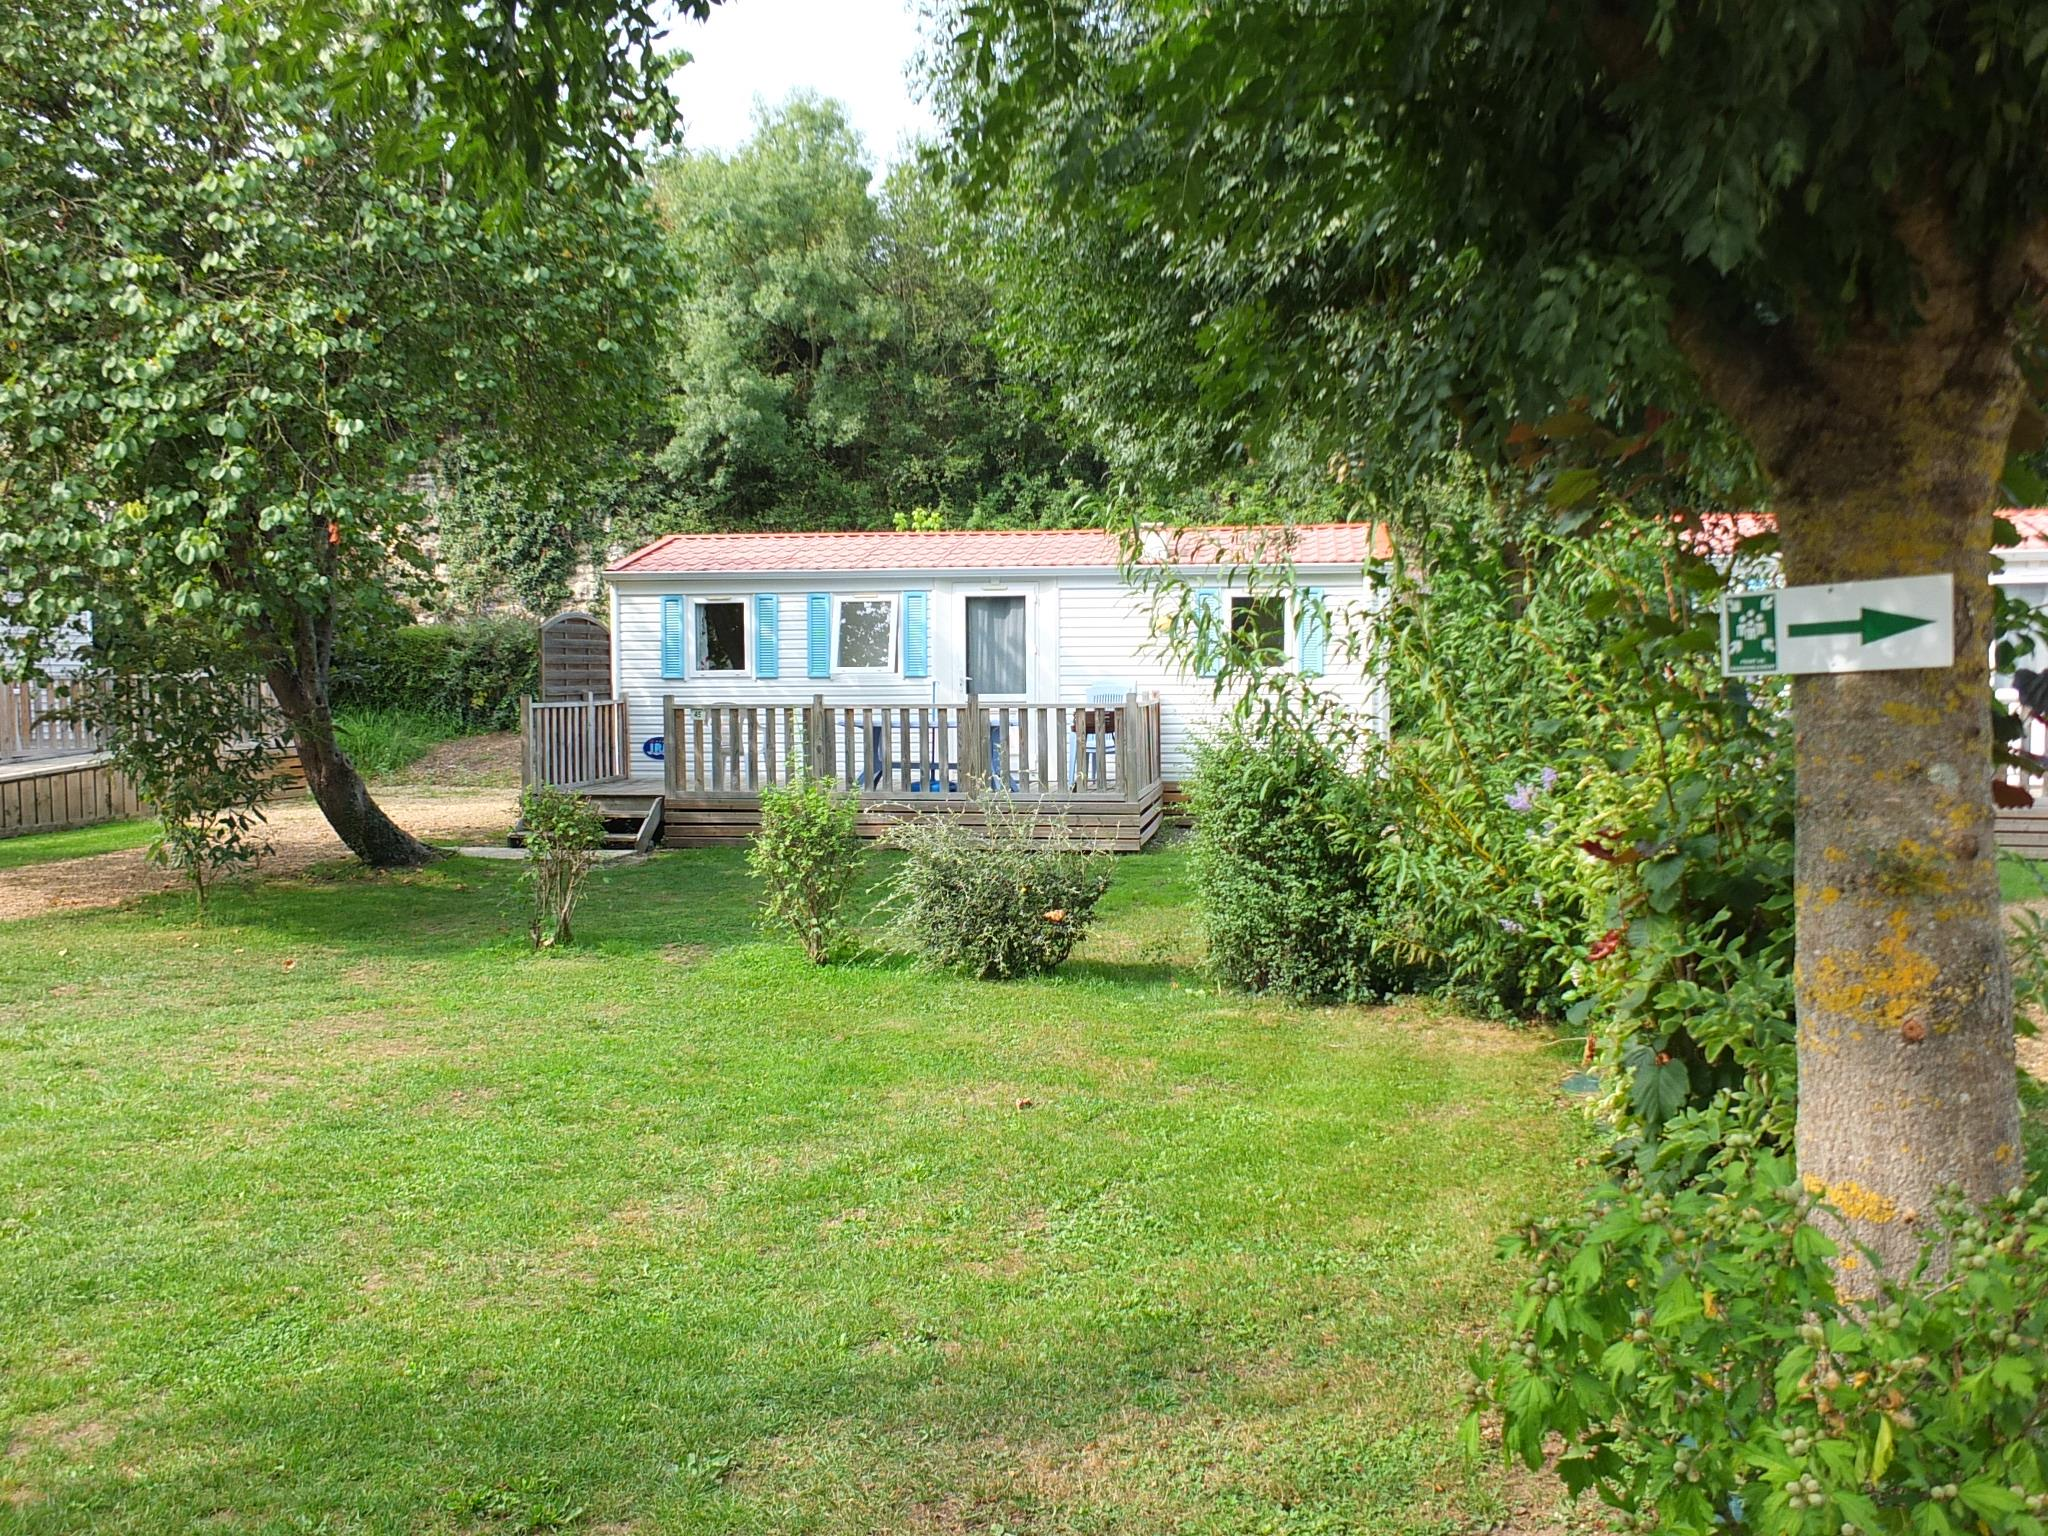 Establishment Camping Les Portes De L'anjou - Durtal